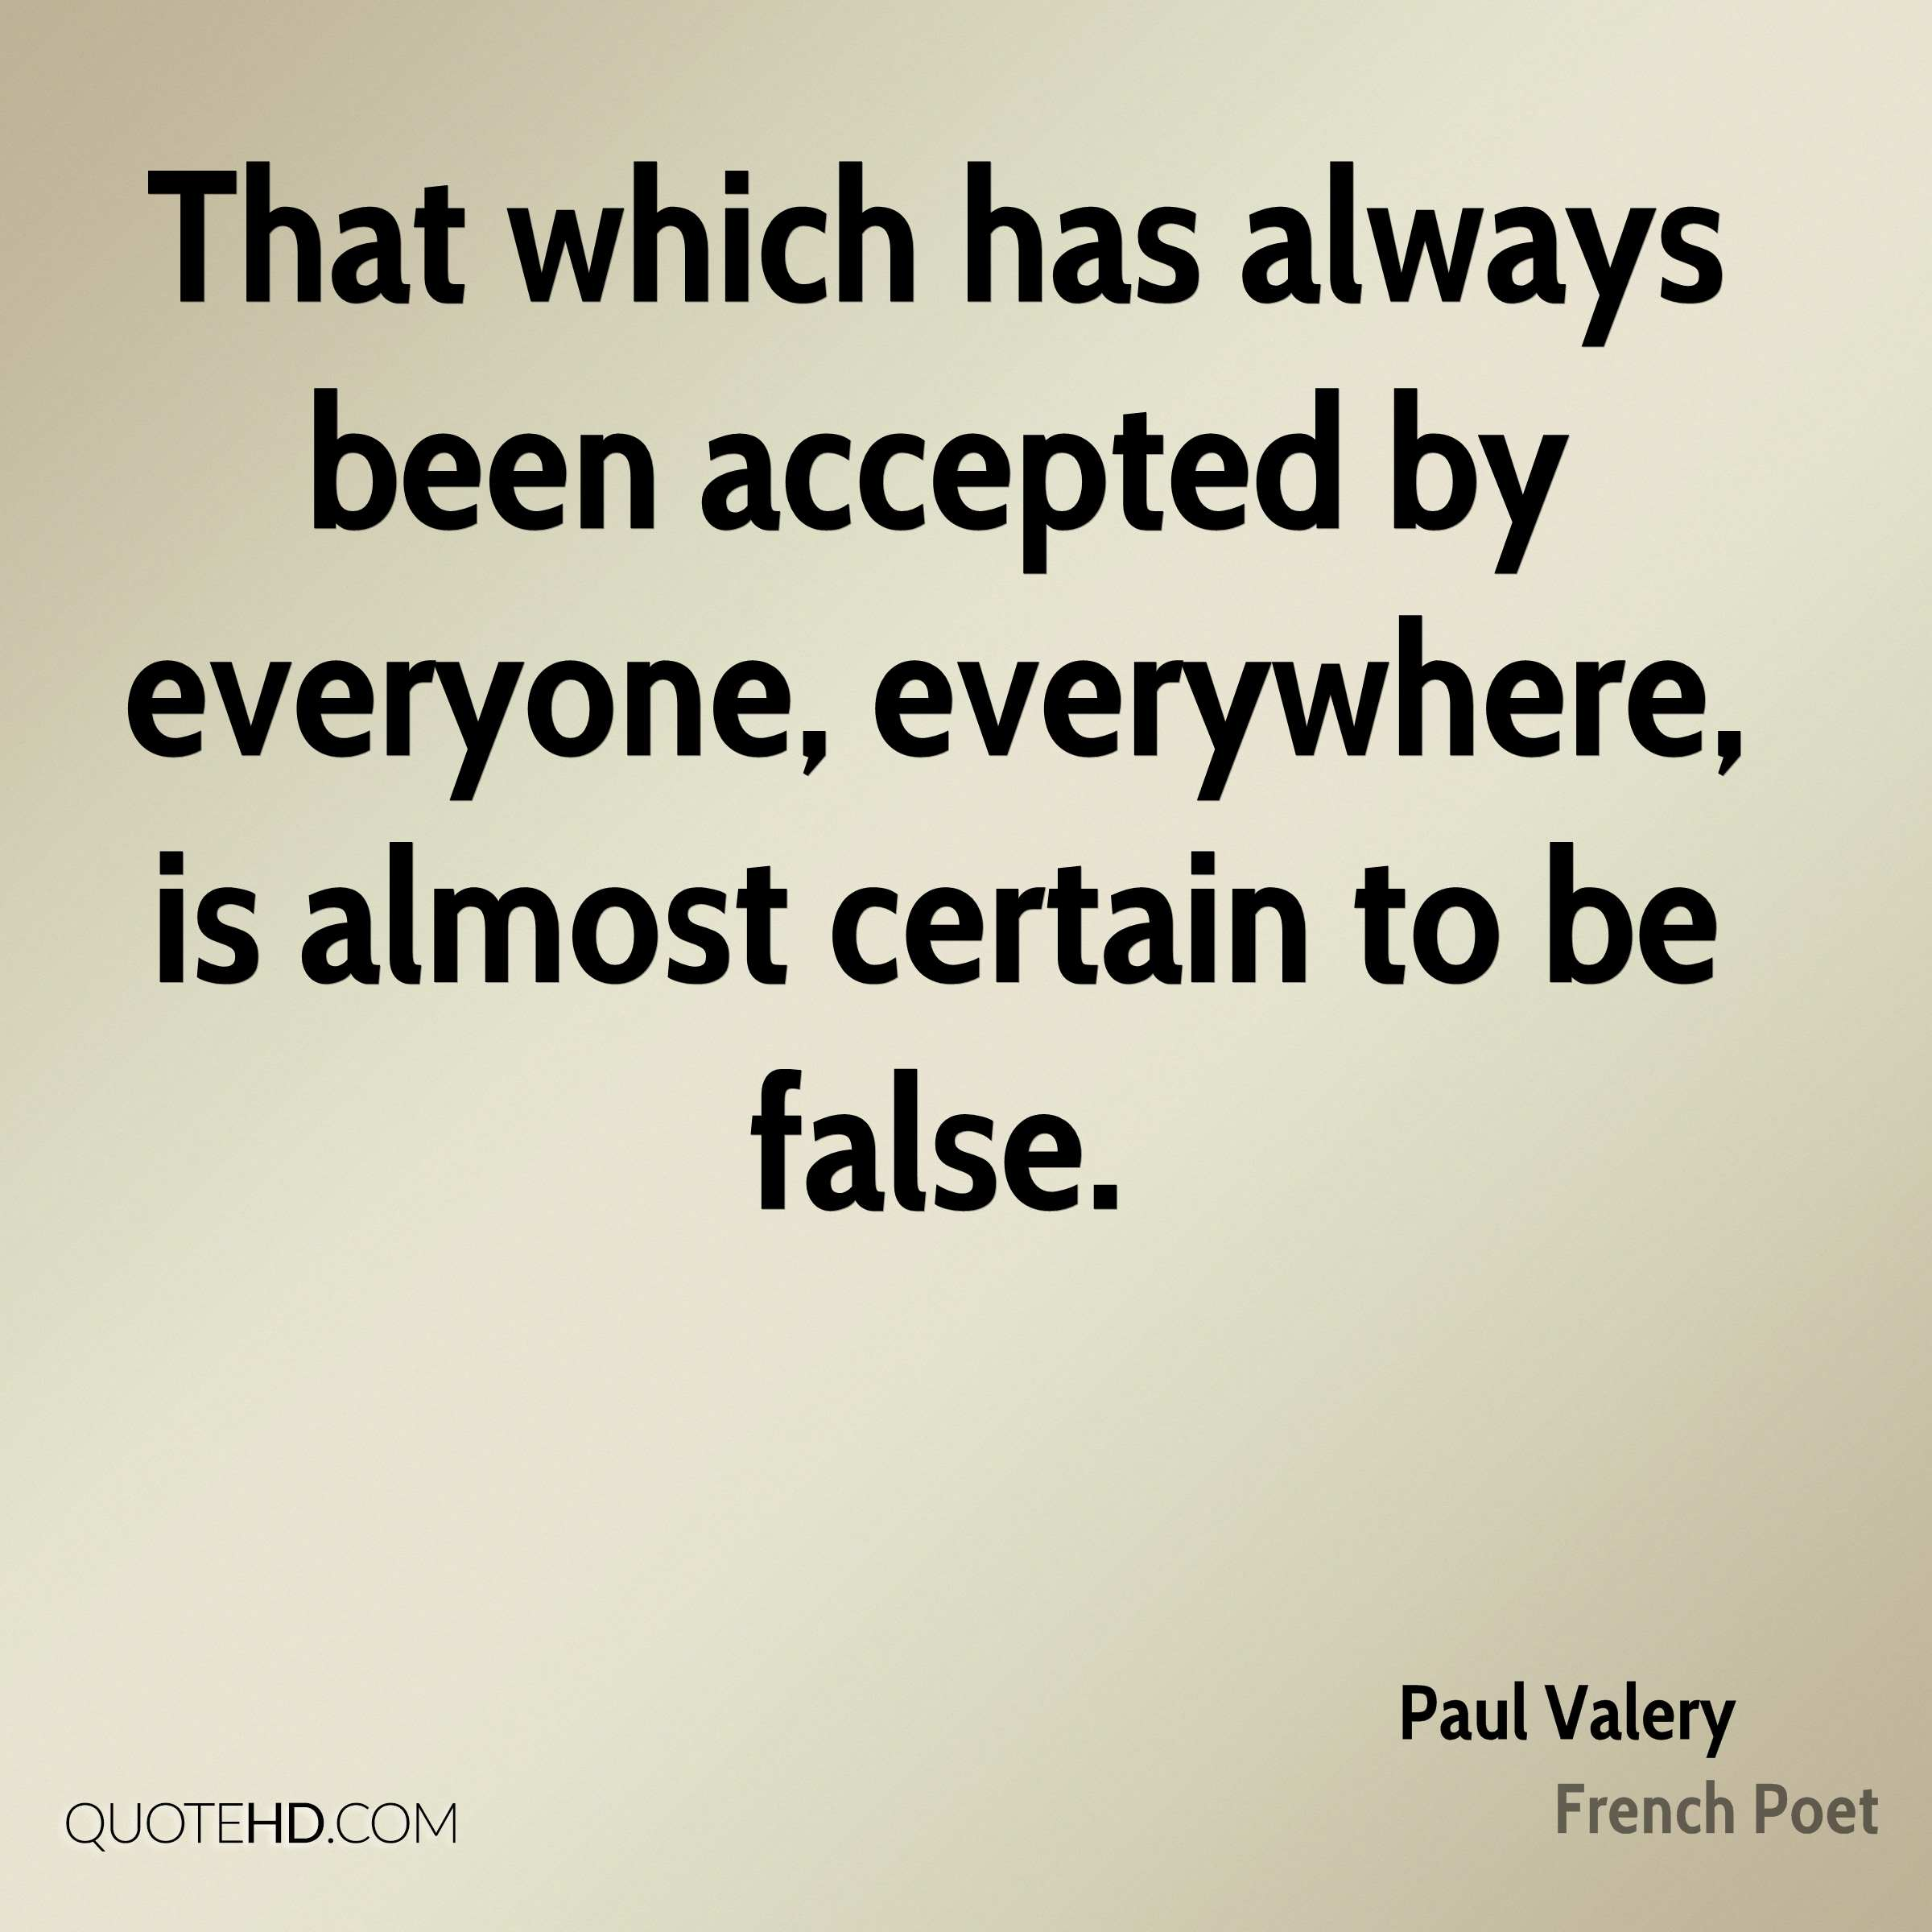 That which has always been accepted by everyone, everywhere, is almost certain to be false.